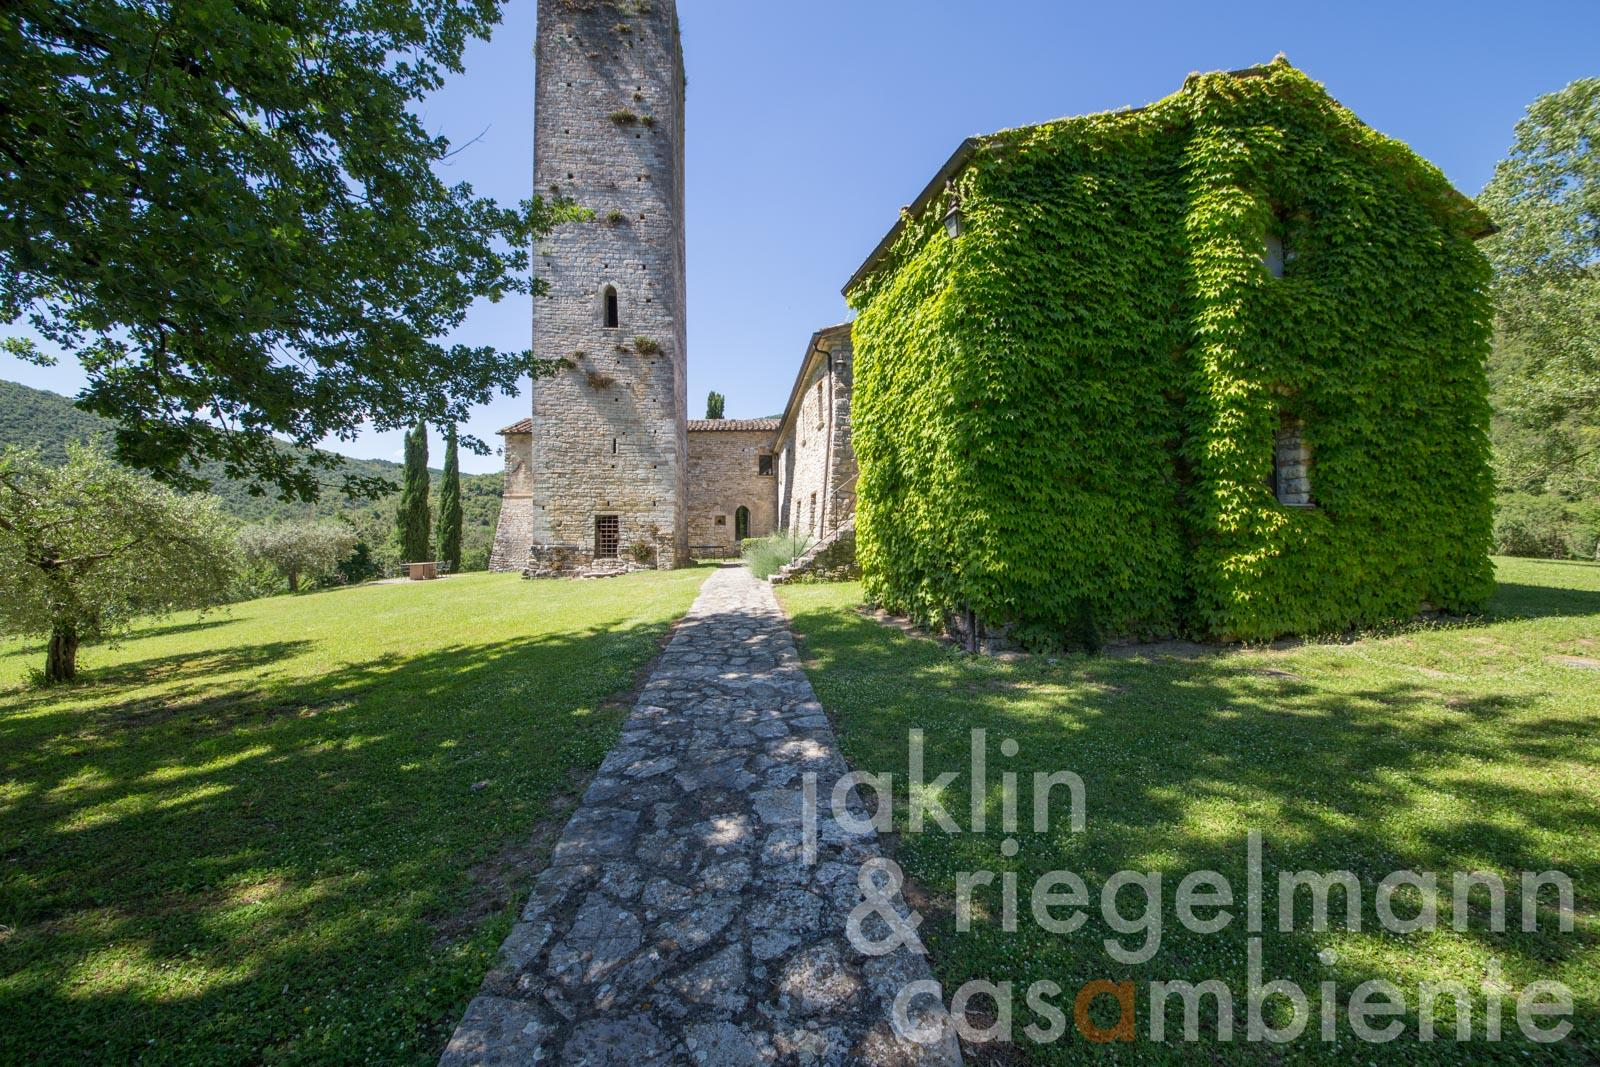 The impressive listed 11th century tower, church and country house with swimming pool and annexe building in Umbria